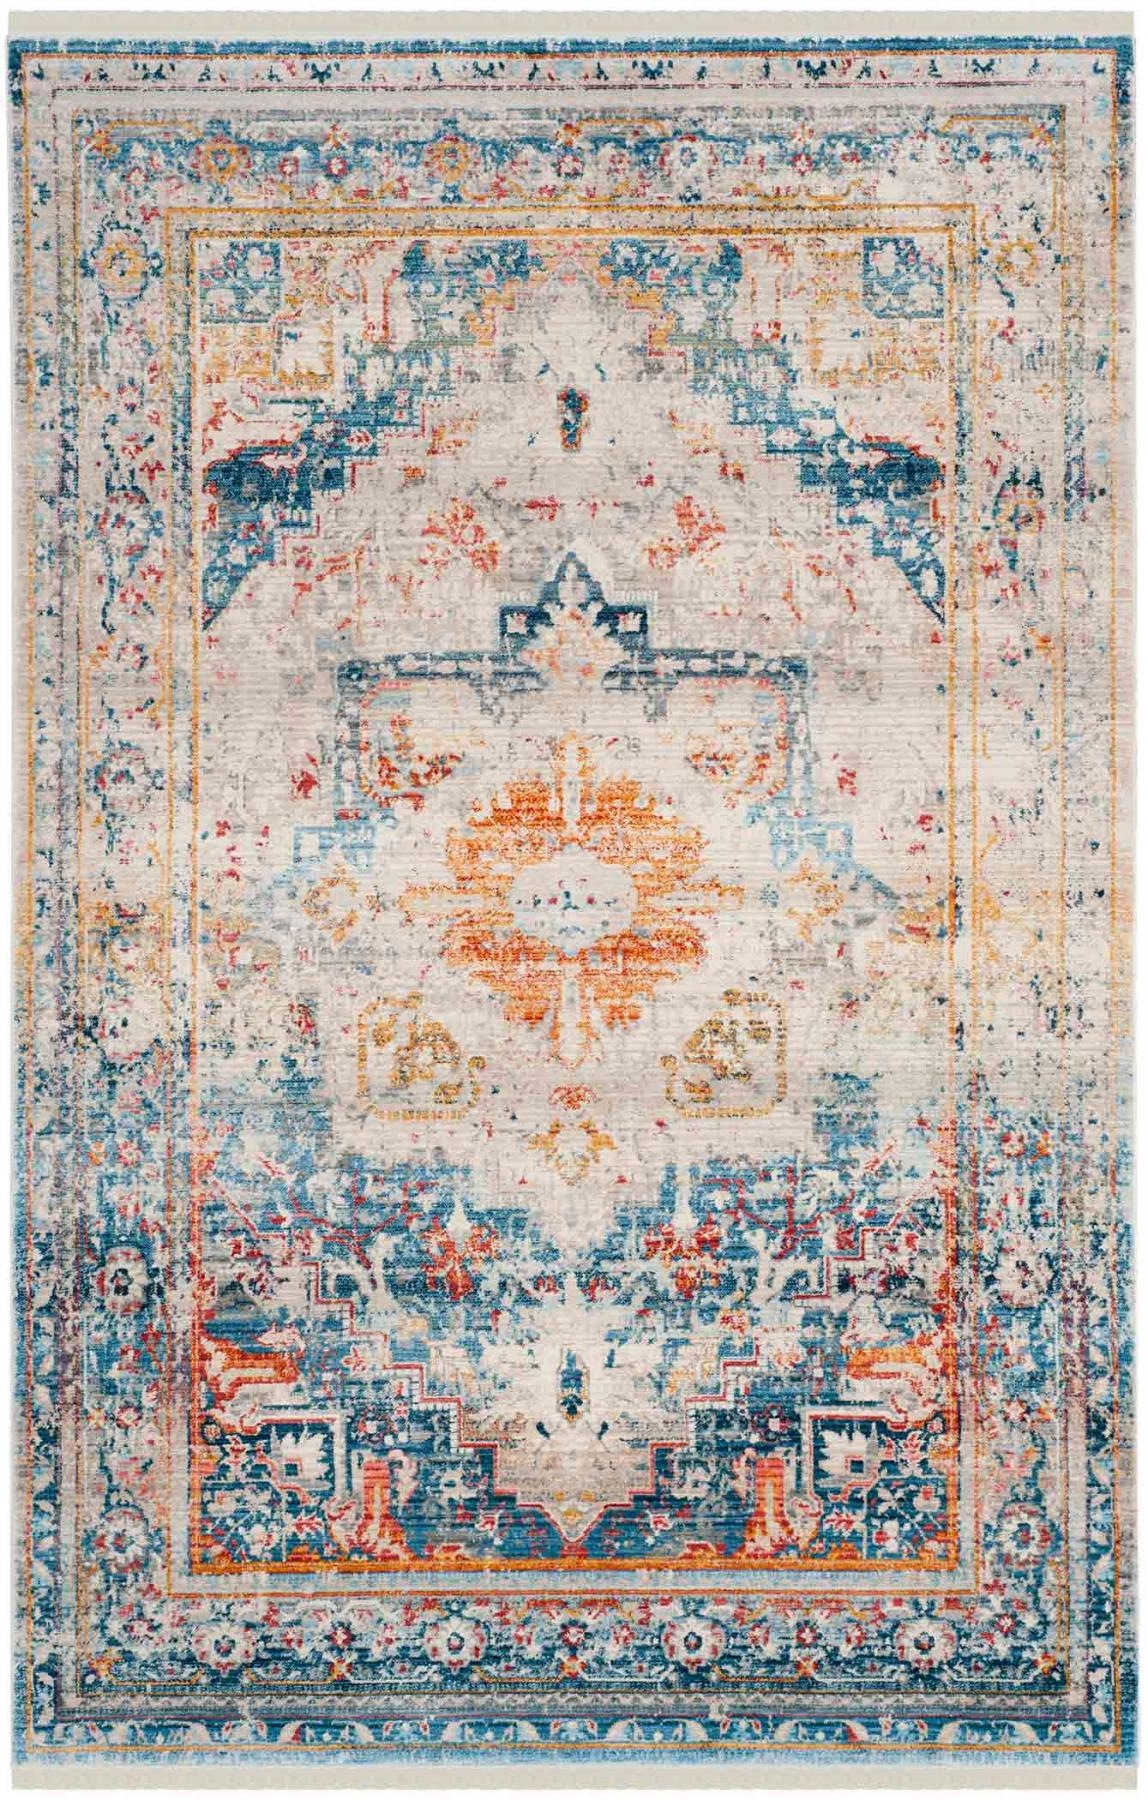 Vintage Persian Rugs Trending New Area Rug Safavieh For Blue Persian Rugs (View 15 of 15)